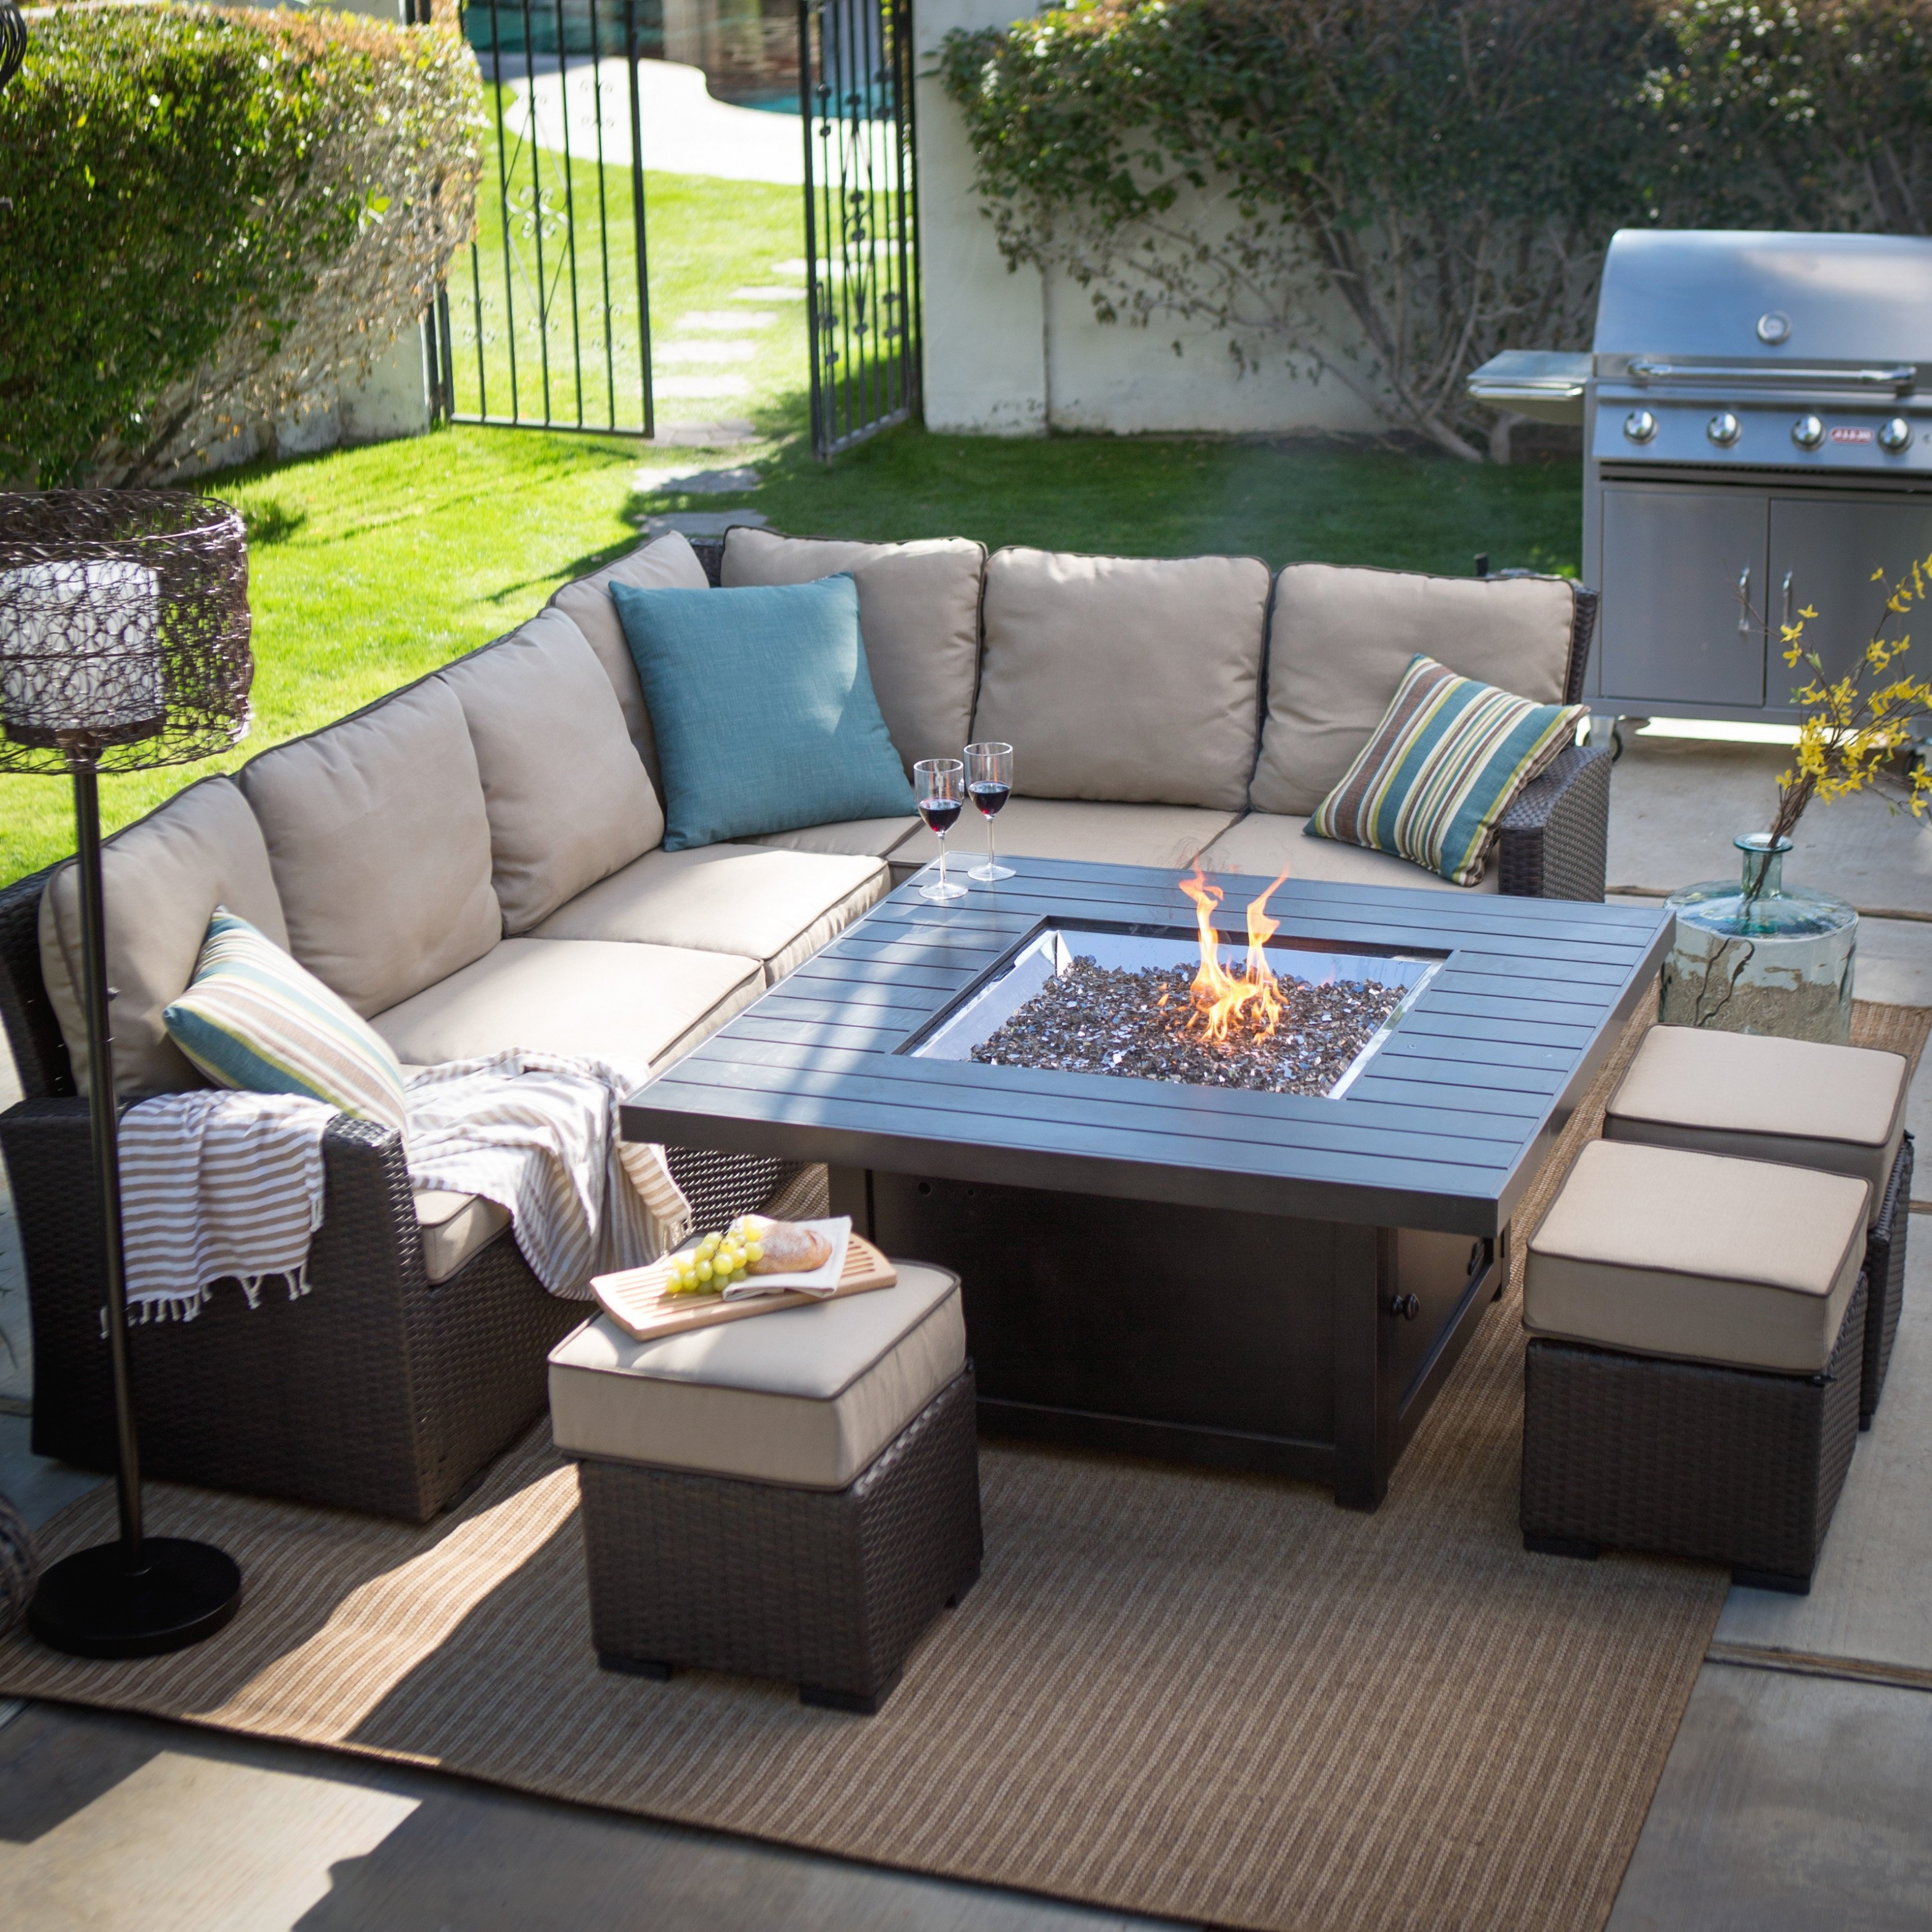 Patio Furniture Conversation Sets With Fire Pit Inside Current Revisited Fire Pit Conversation Sets Shrewd Patio Furniture Decor (View 19 of 20)